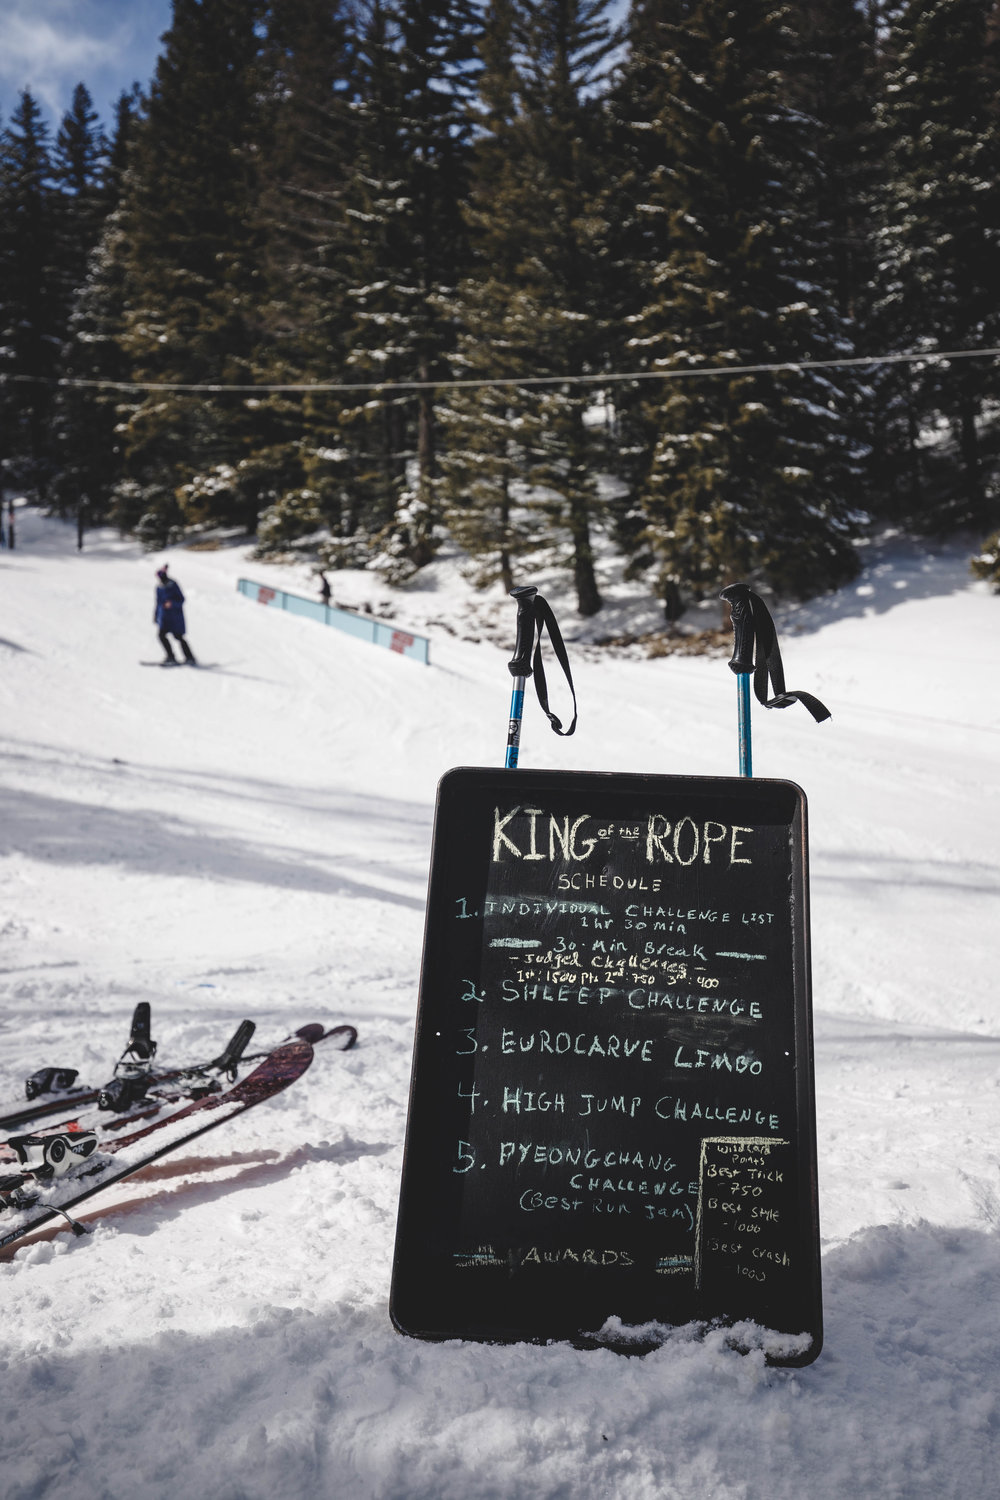 KOTR, thanks to the Sauceposse, Line skis, and Mission Ridge parks.